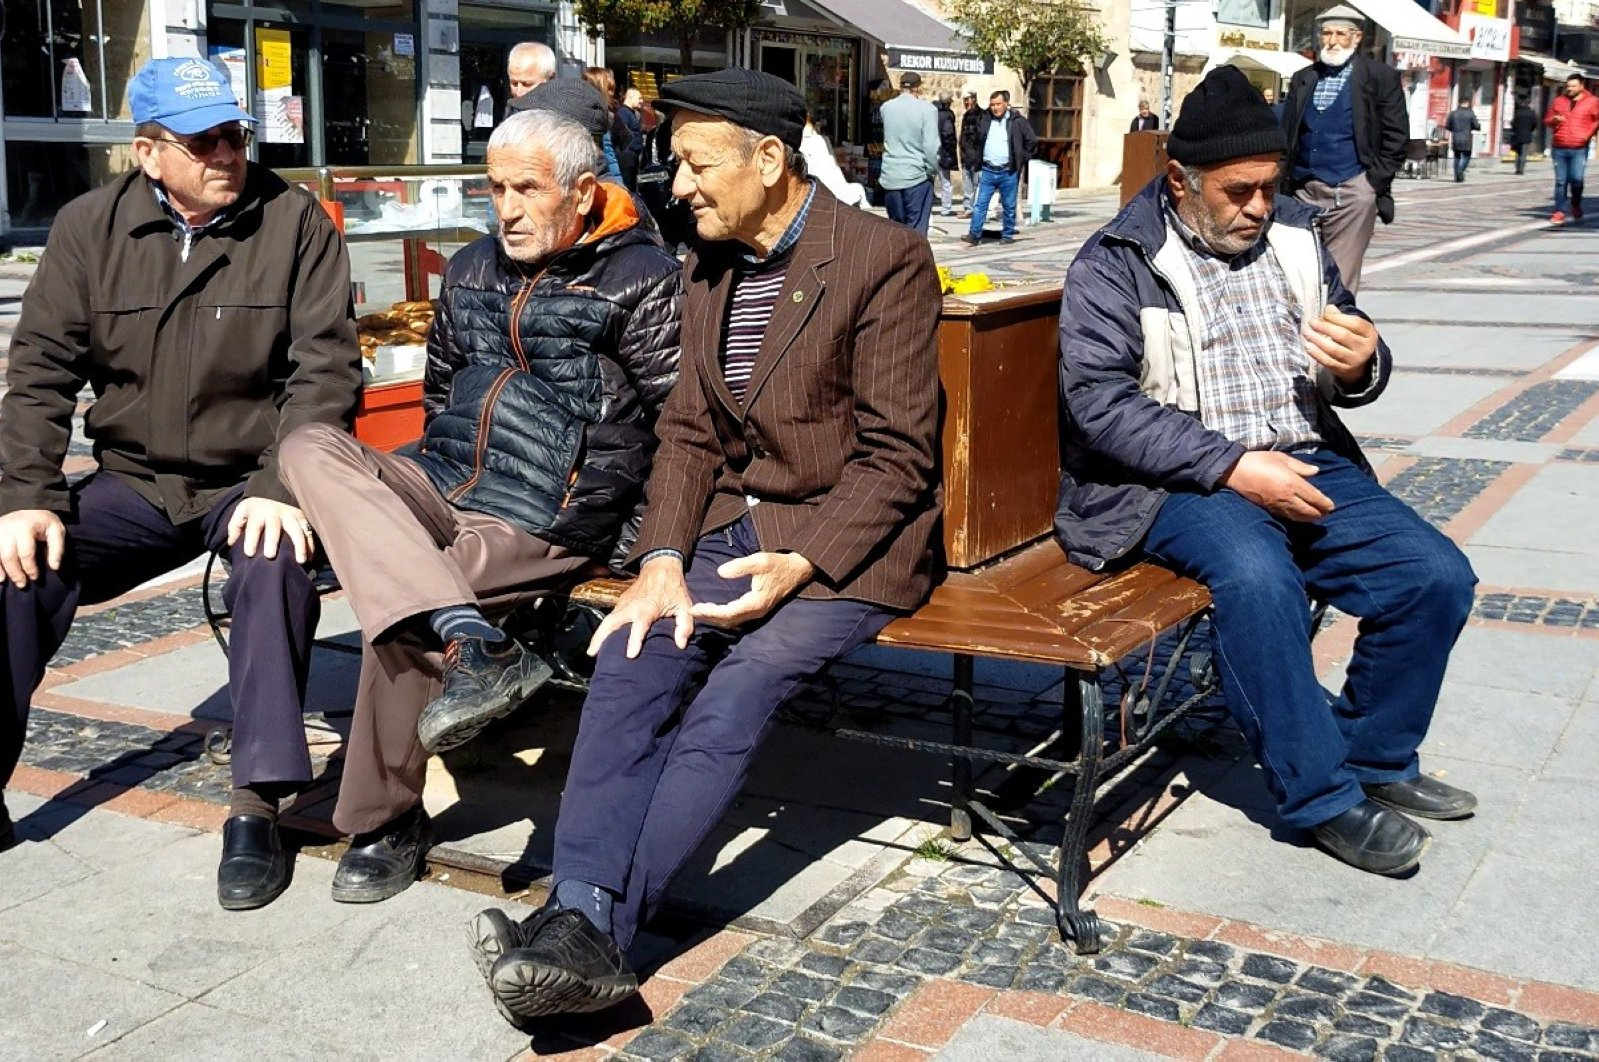 A group of elderly men sitting on a bench in Edirne, Turkey, Tuesday, March 17, 2020. (İHA Photo)